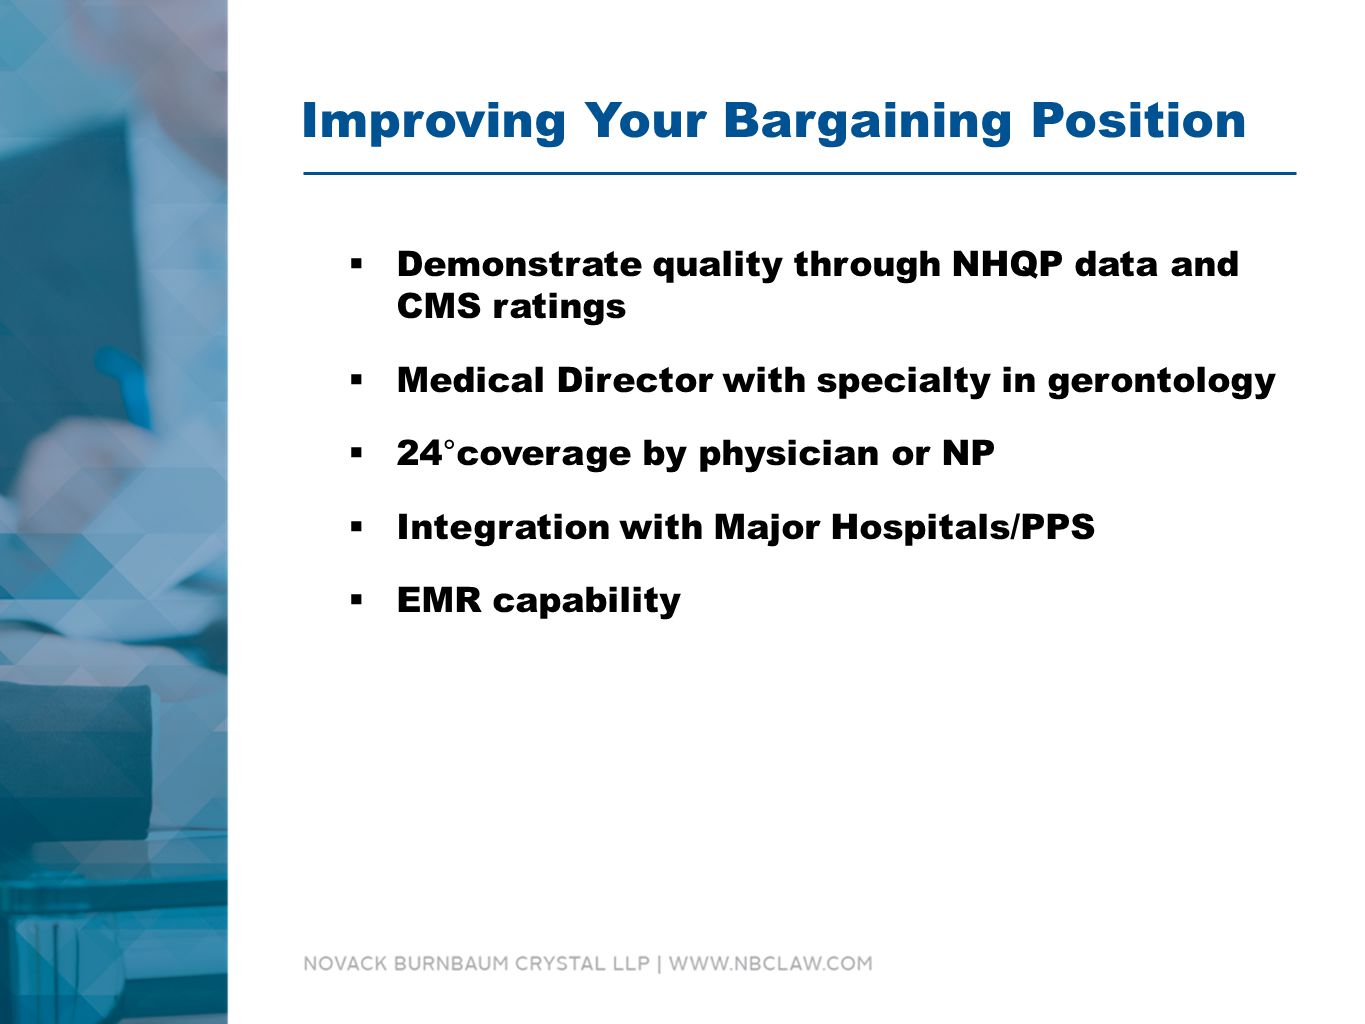 Improving Your Bargaining Position  Demonstrate quality through NHQP data and CMS ratings  Medical Director with specialty in gerontology  24°coverage by physician or NP  Integration with Major Hospitals/PPS  EMR capability